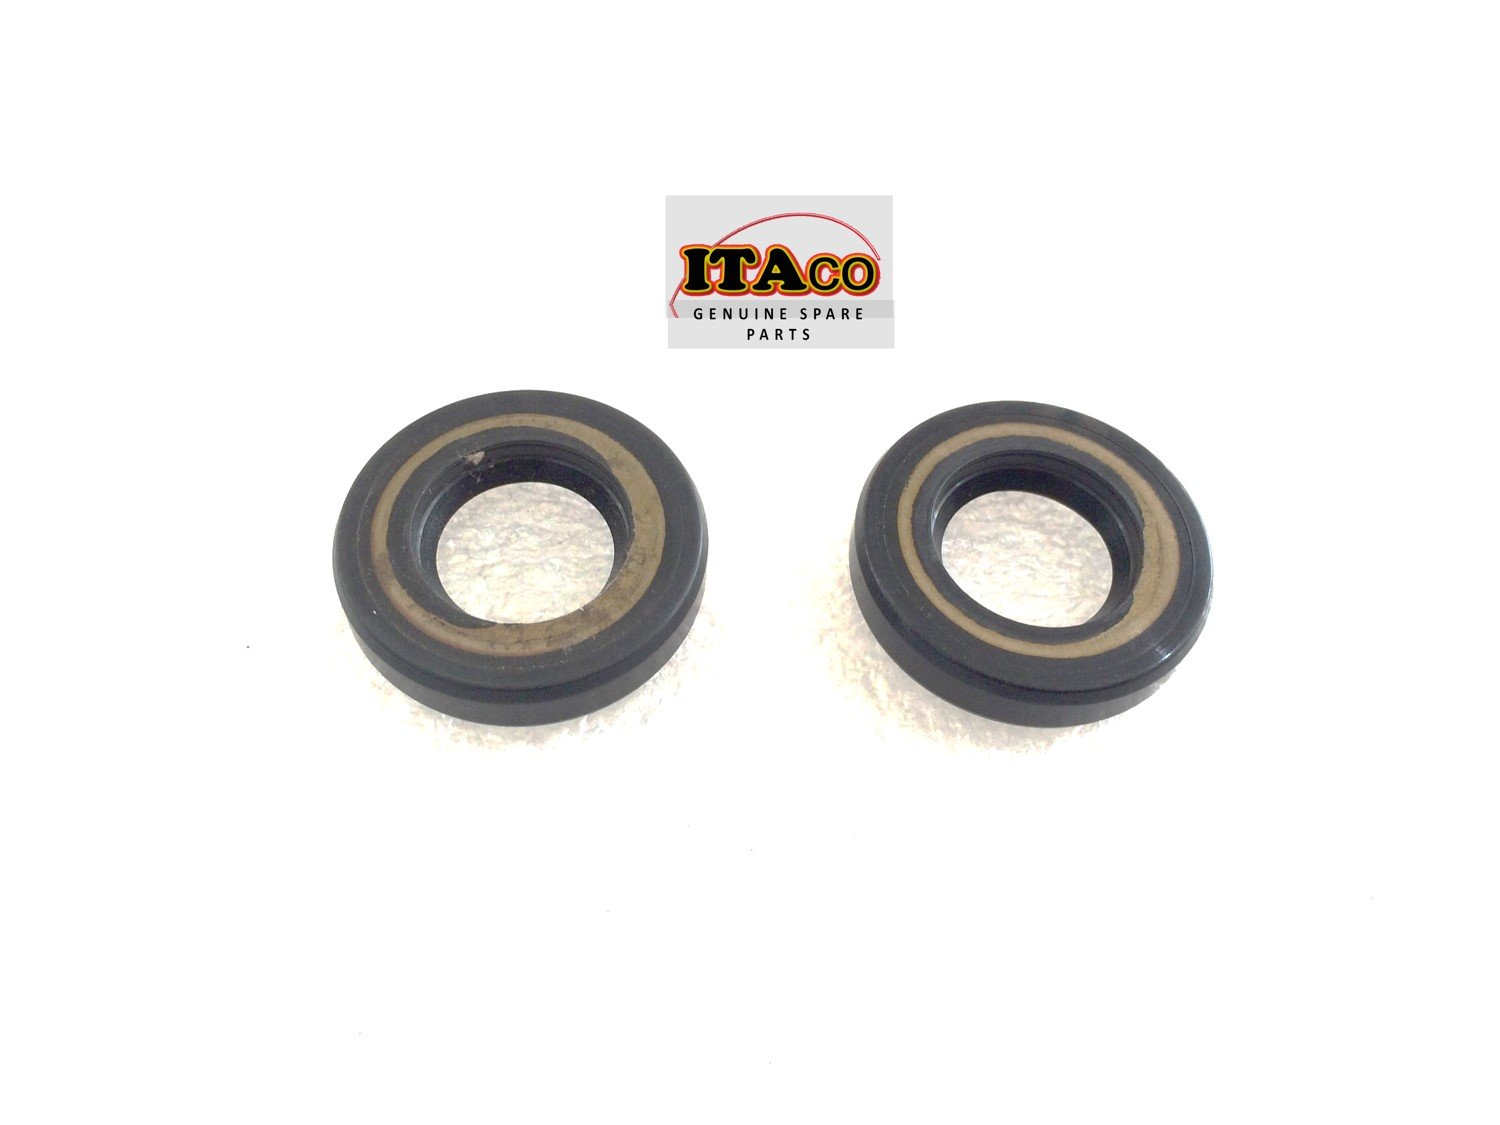 2 x S-Type OIL SEAL SEALS 93101-15074 15 x 28 x 6 fit Yamaha Outboard 5D,6HP, 8HP, F6HP, F8HP, F9.9HP 2& 4 stroke